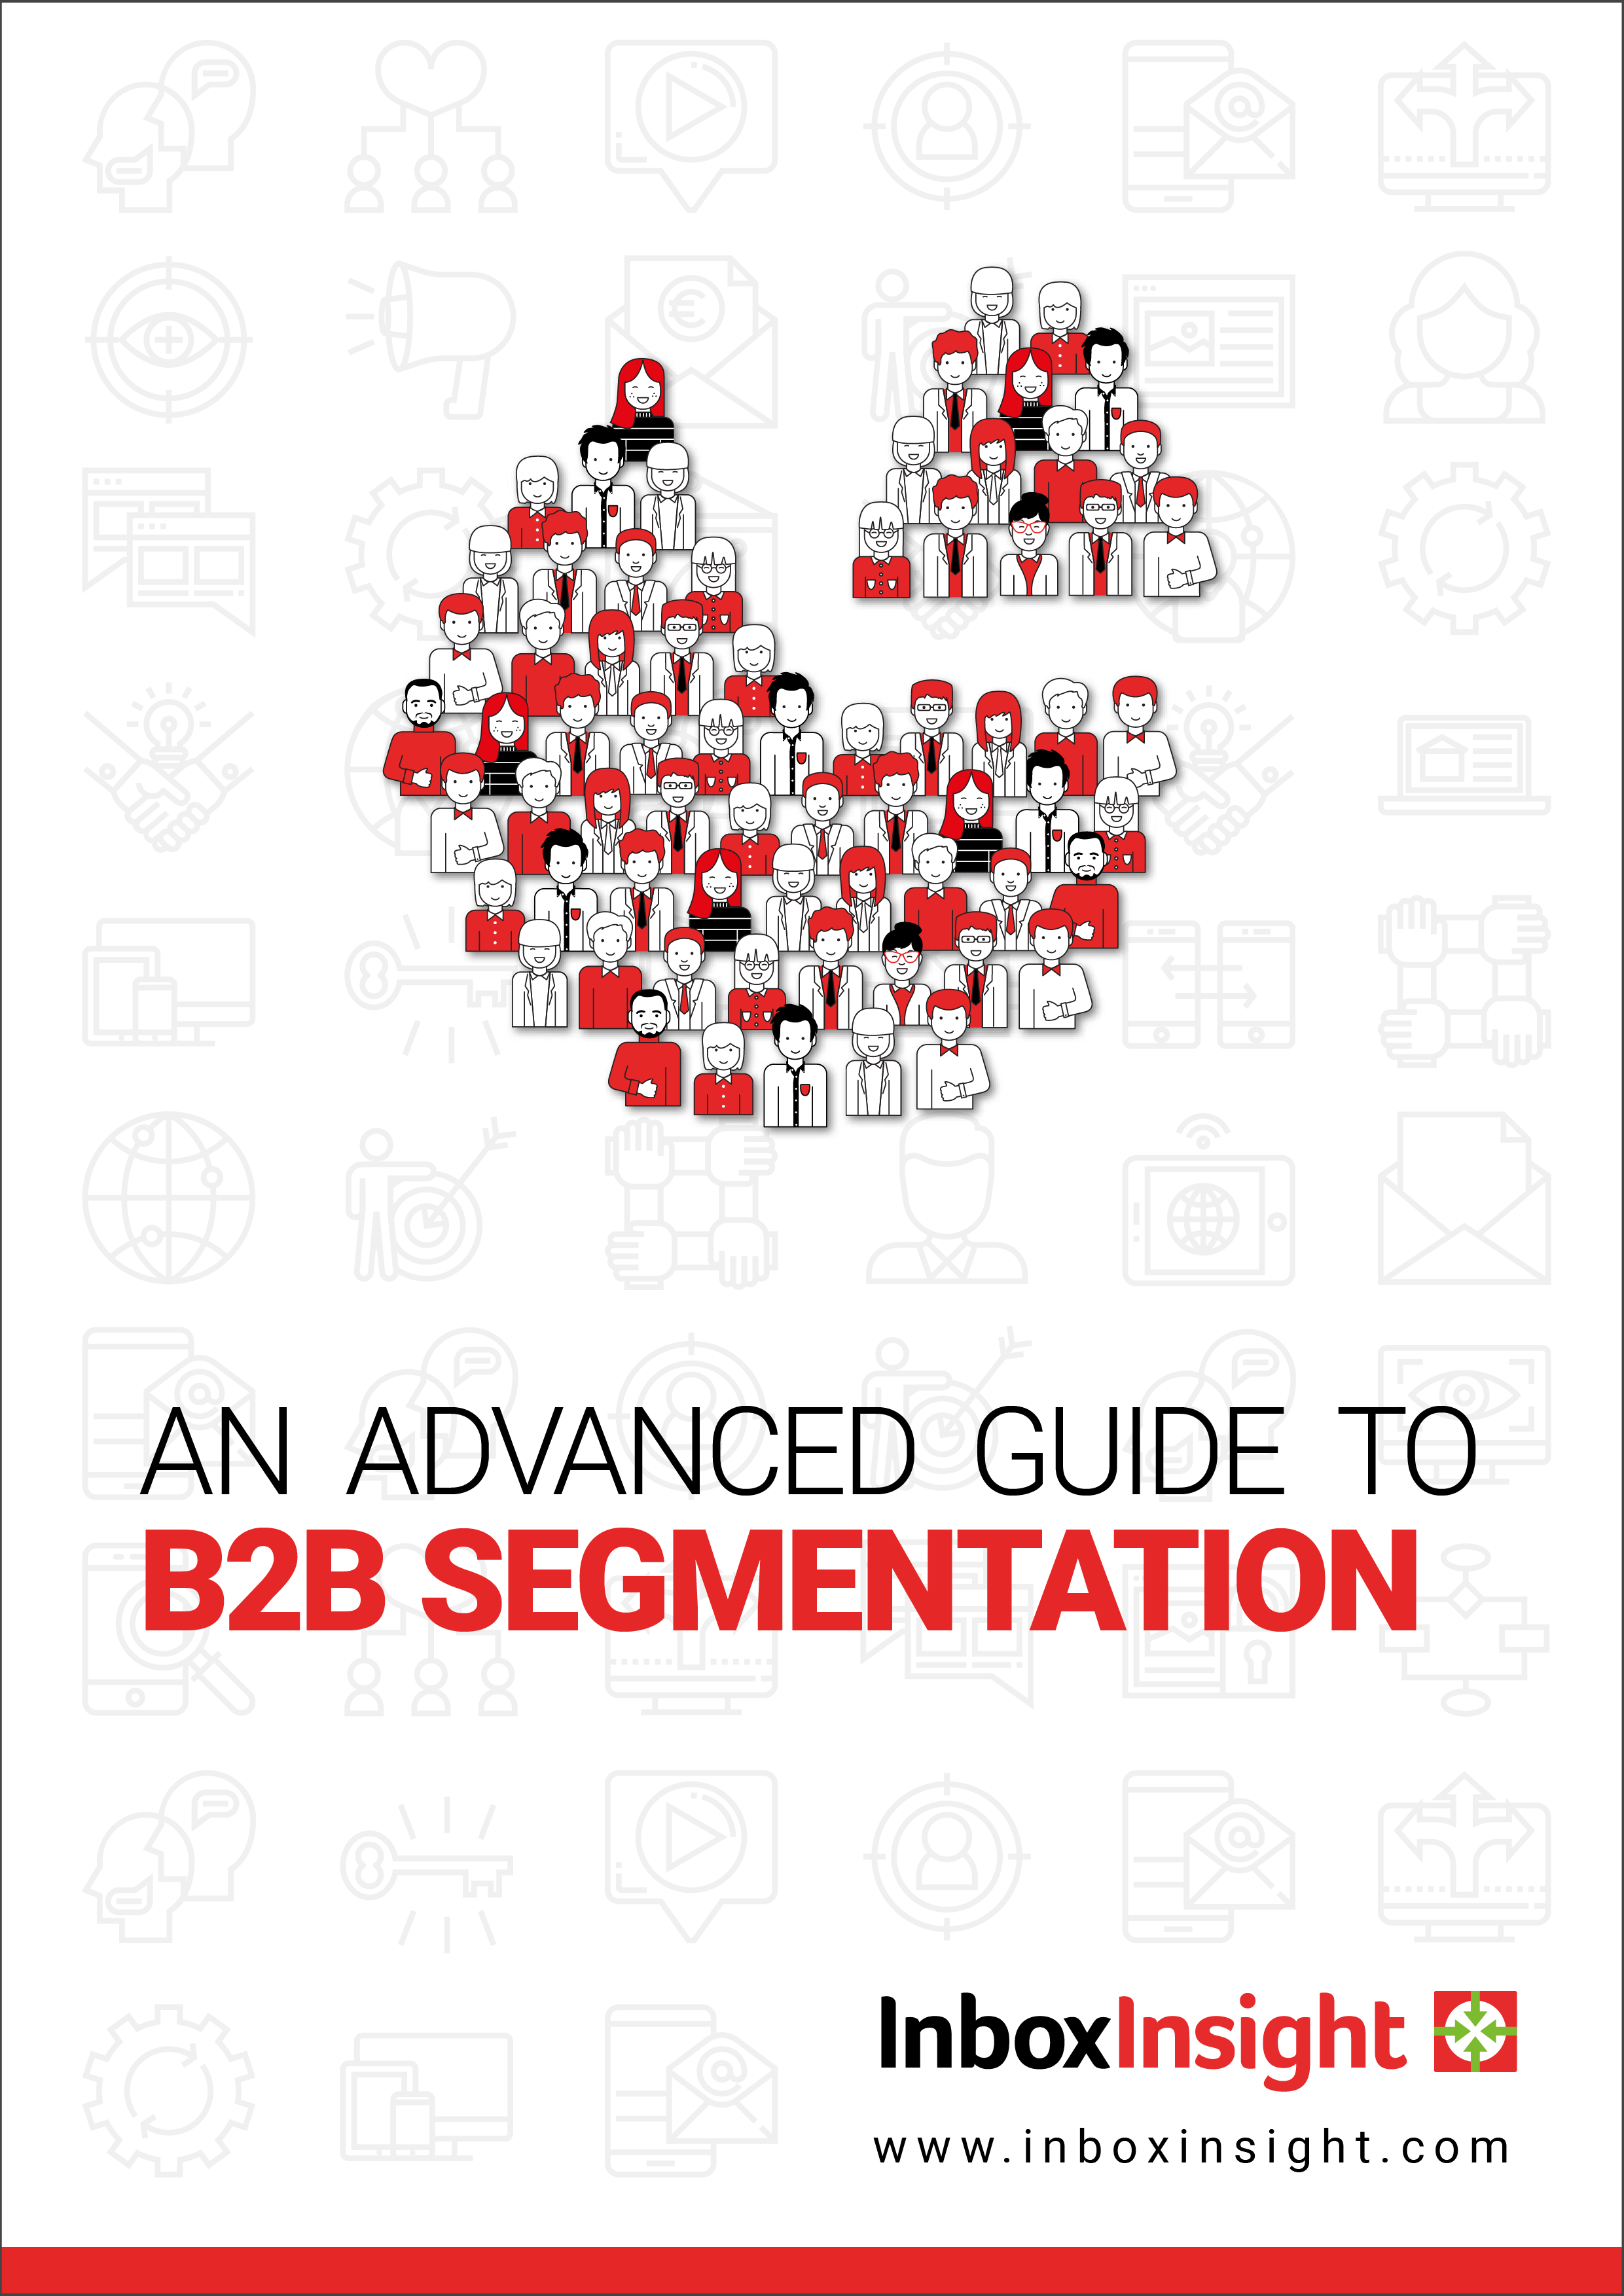 An Advanced Guide to B2B Segmentation